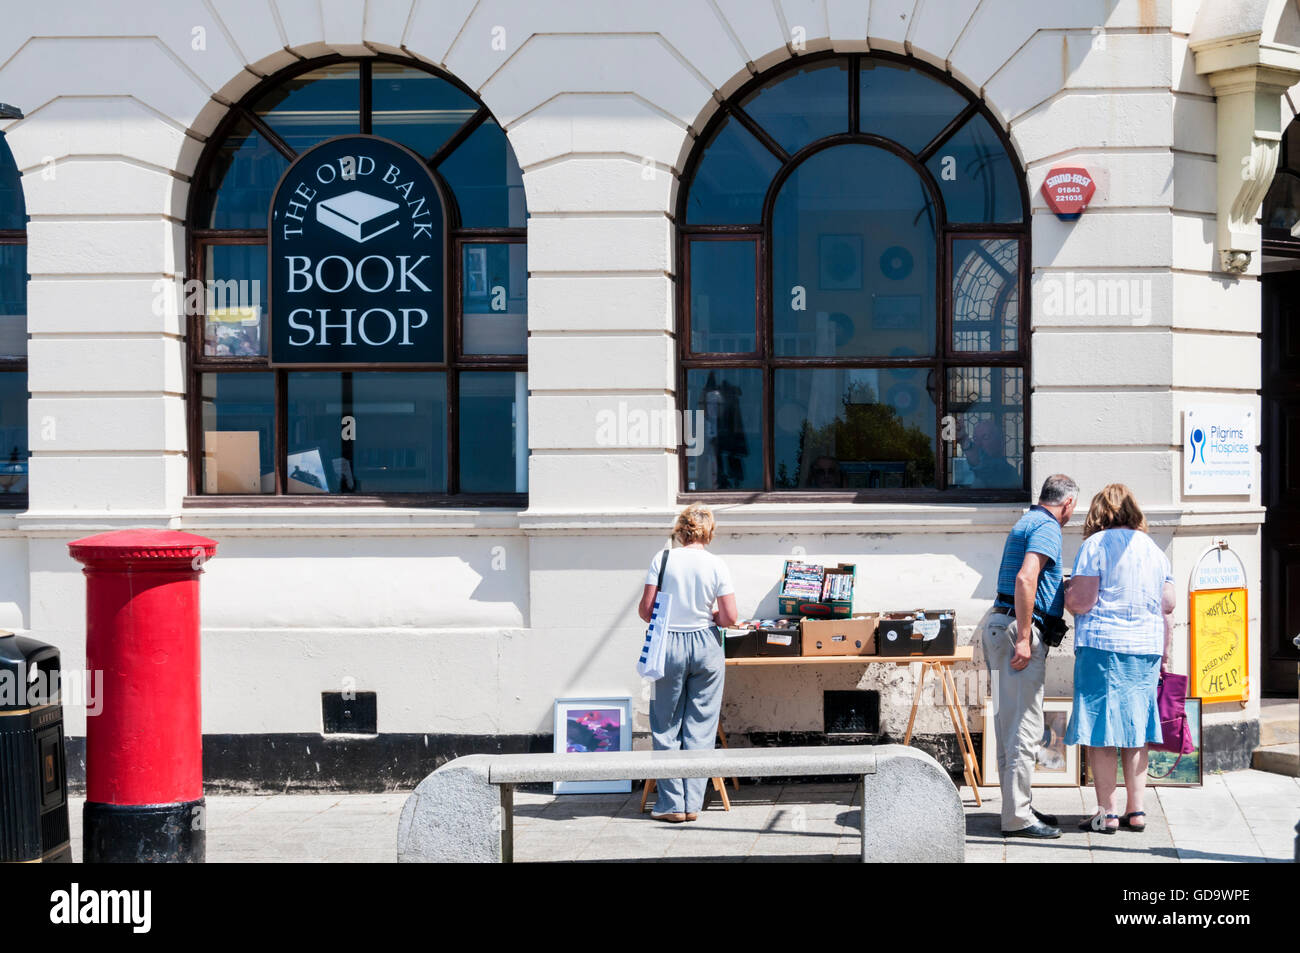 The Old Bank bookshop in Margate is in the former premises of the now closed Midland Bank. - Stock Image